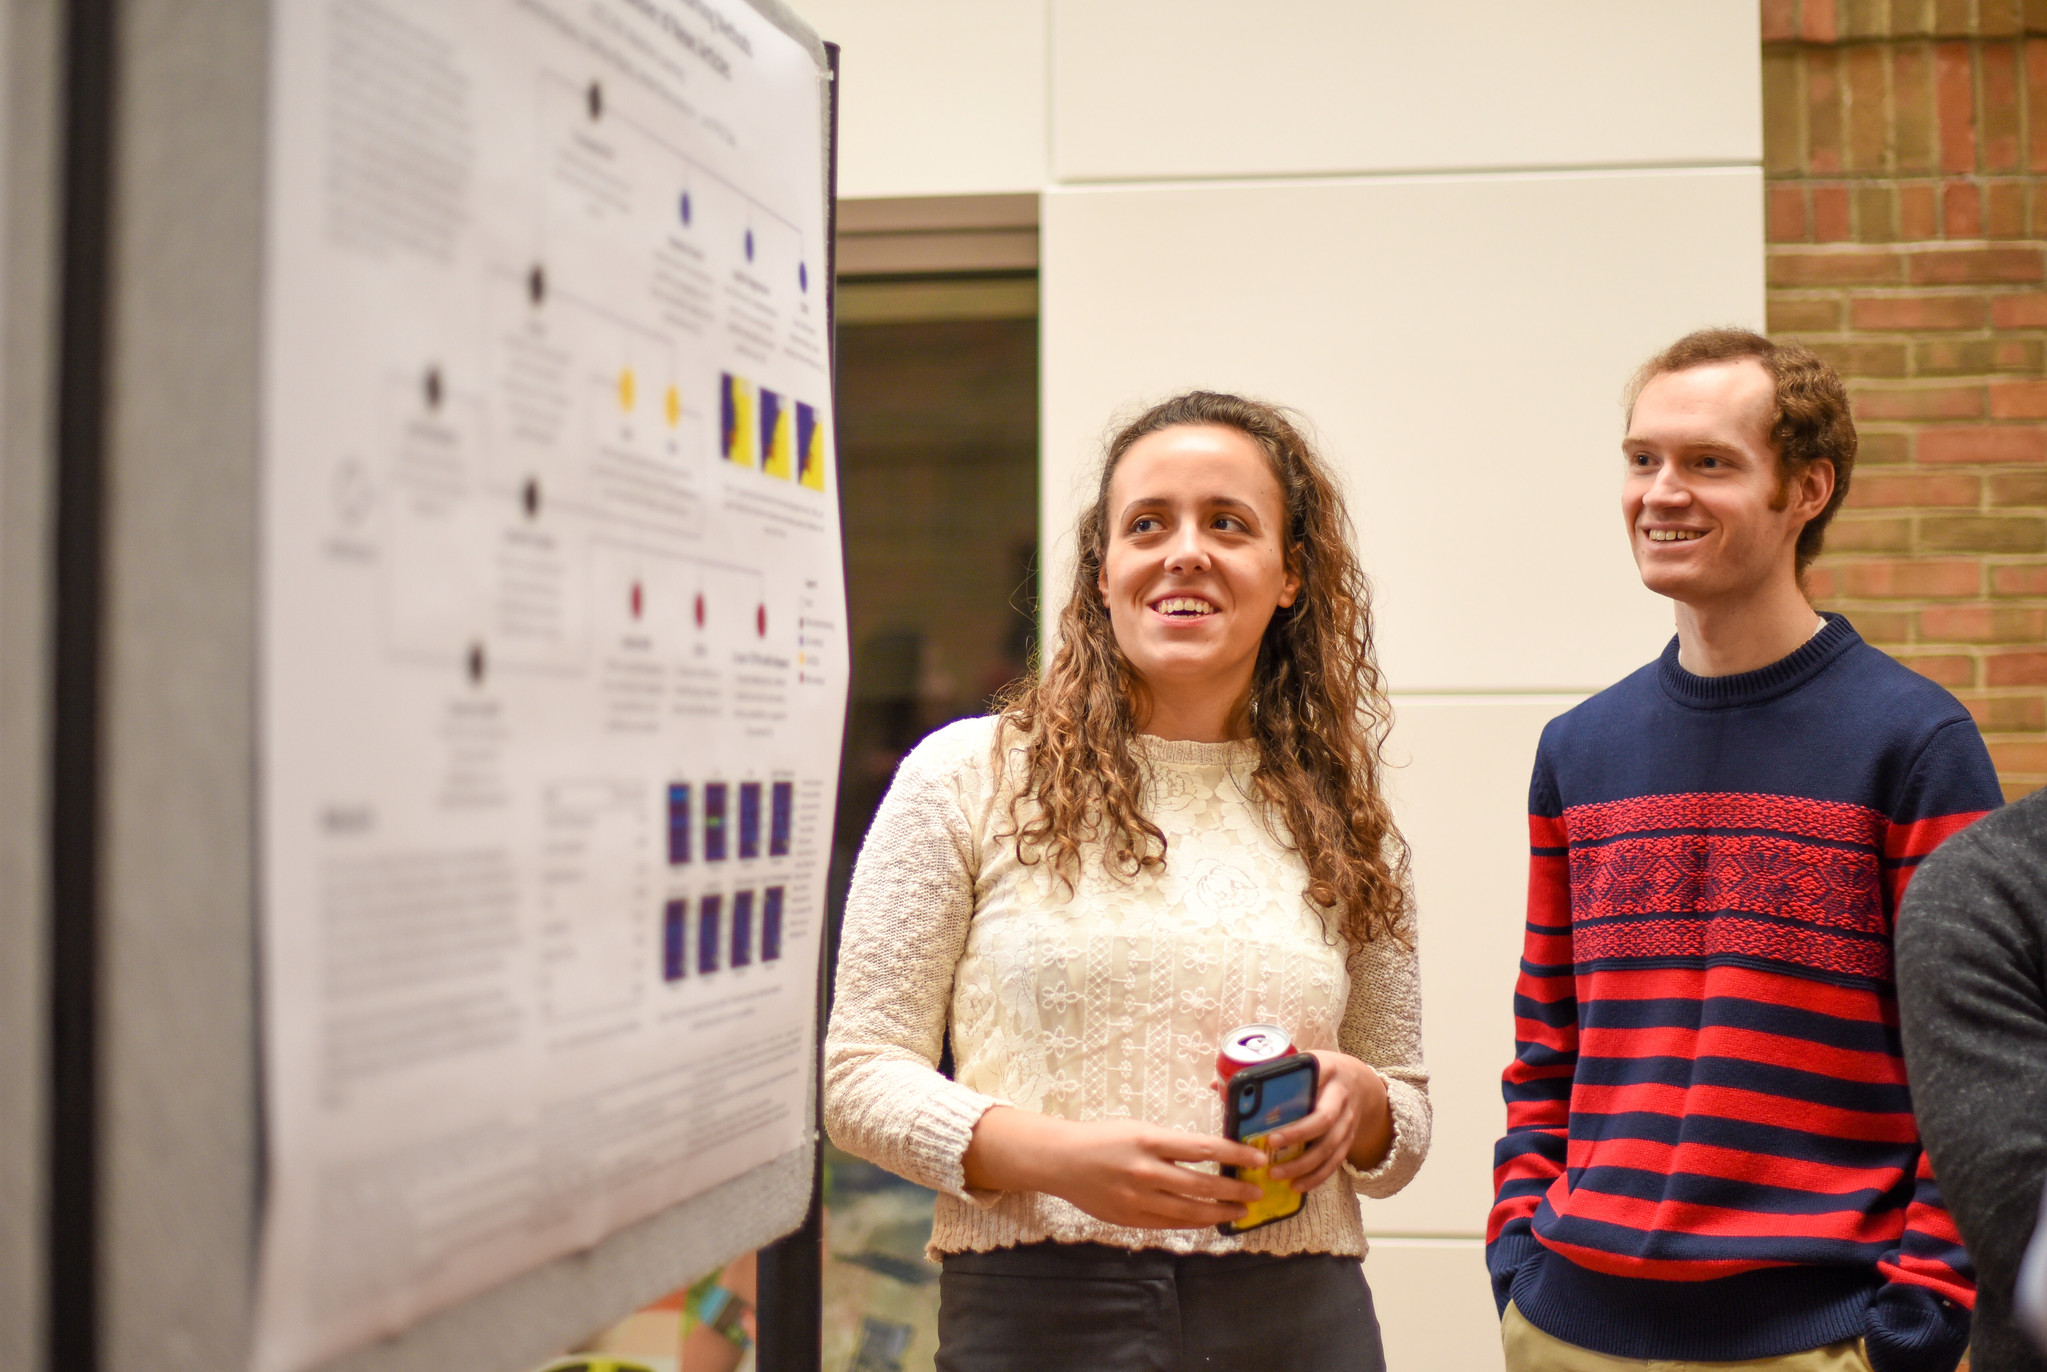 Students at the poster session